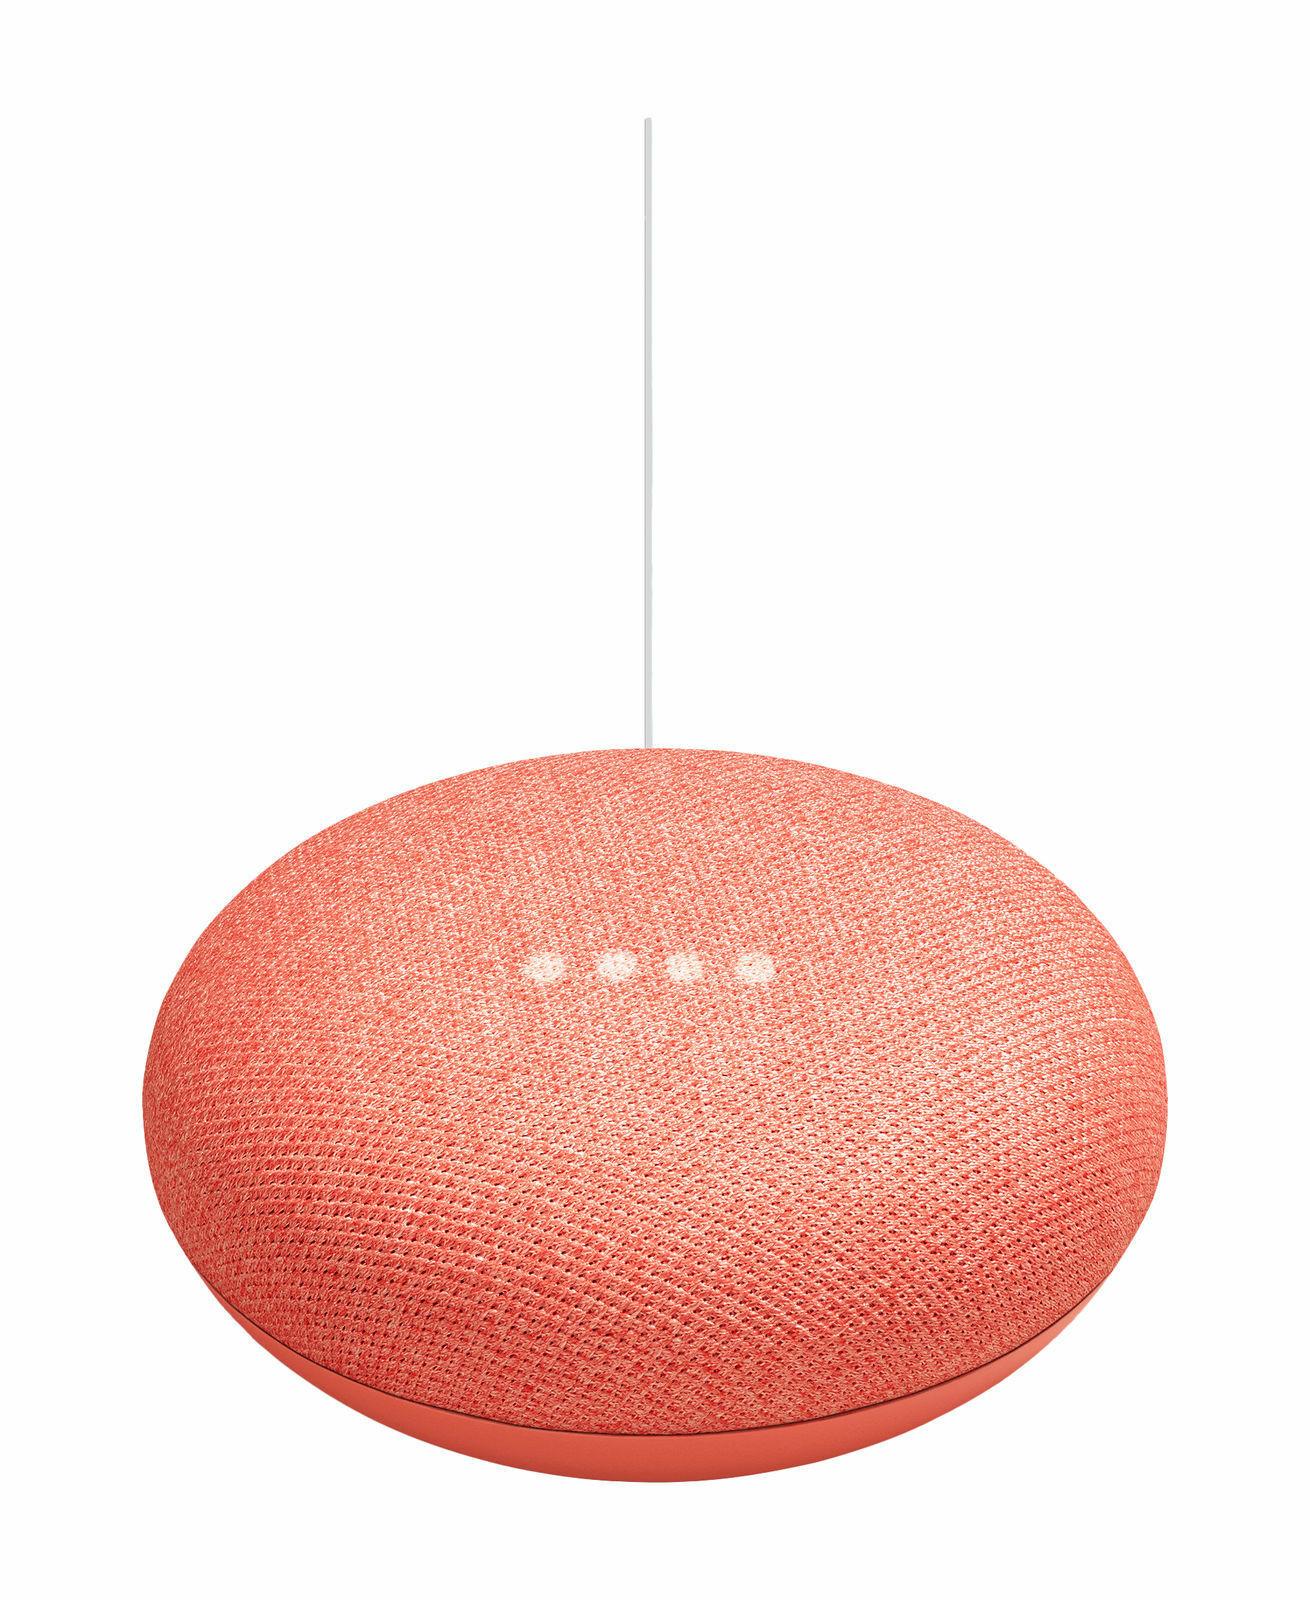 Google Home Mini Hands-Free Smart Speaker, Coral, Get Answers, Control Smart